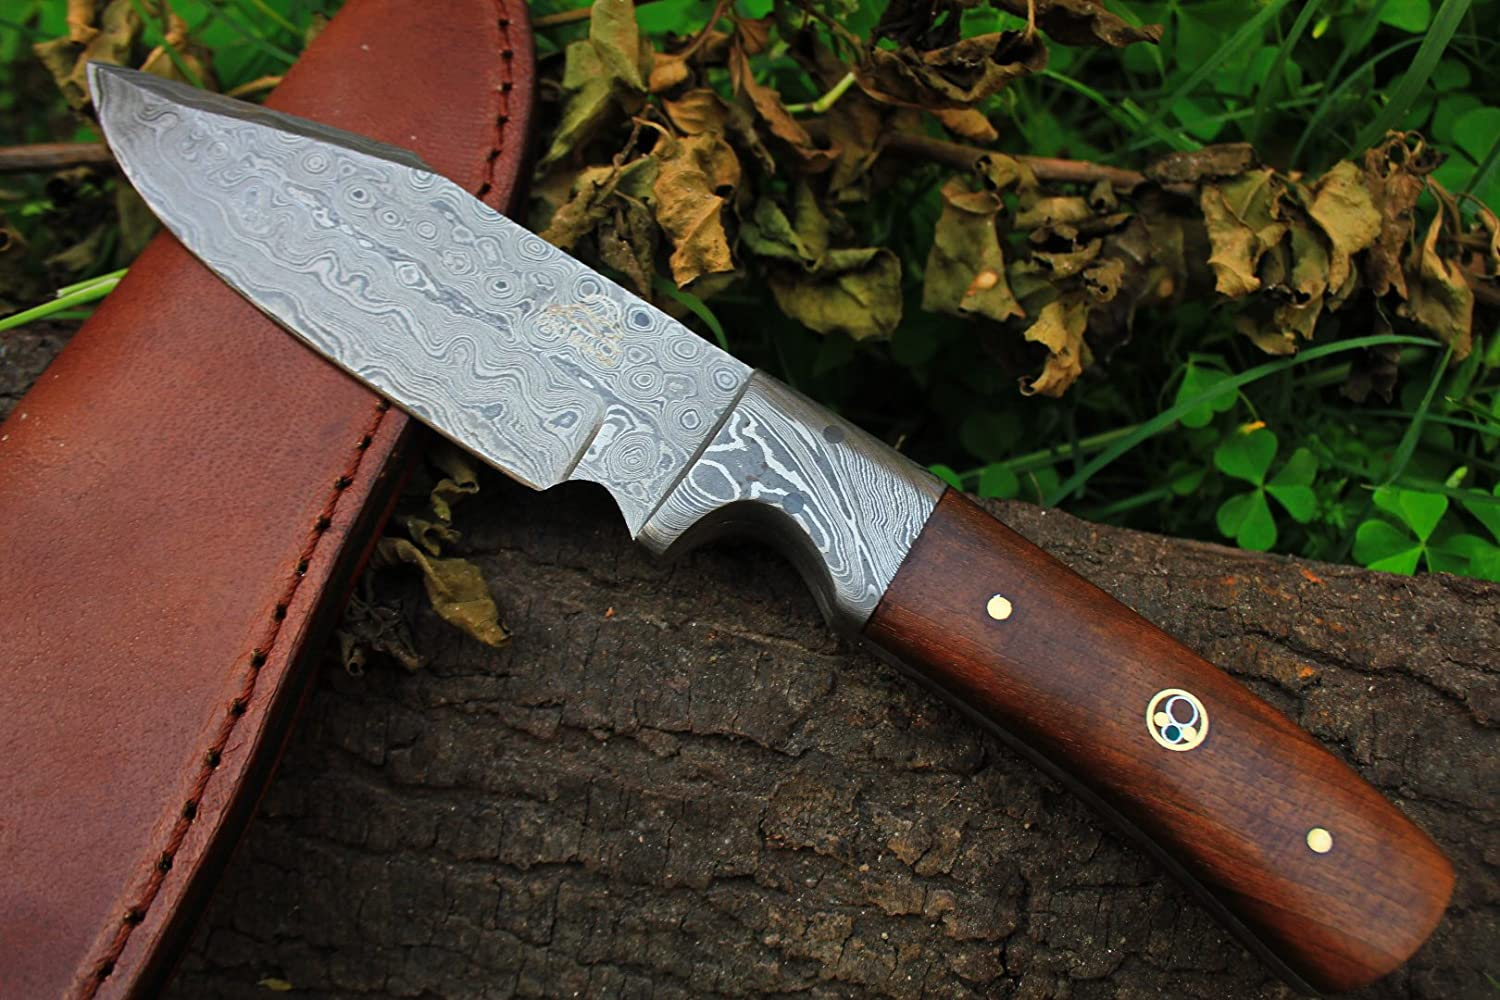 7 9 18 DKC-516 Hunter Damascus Bowie Hunting Handmade Knife Fixed Blade 7.9 oz 9